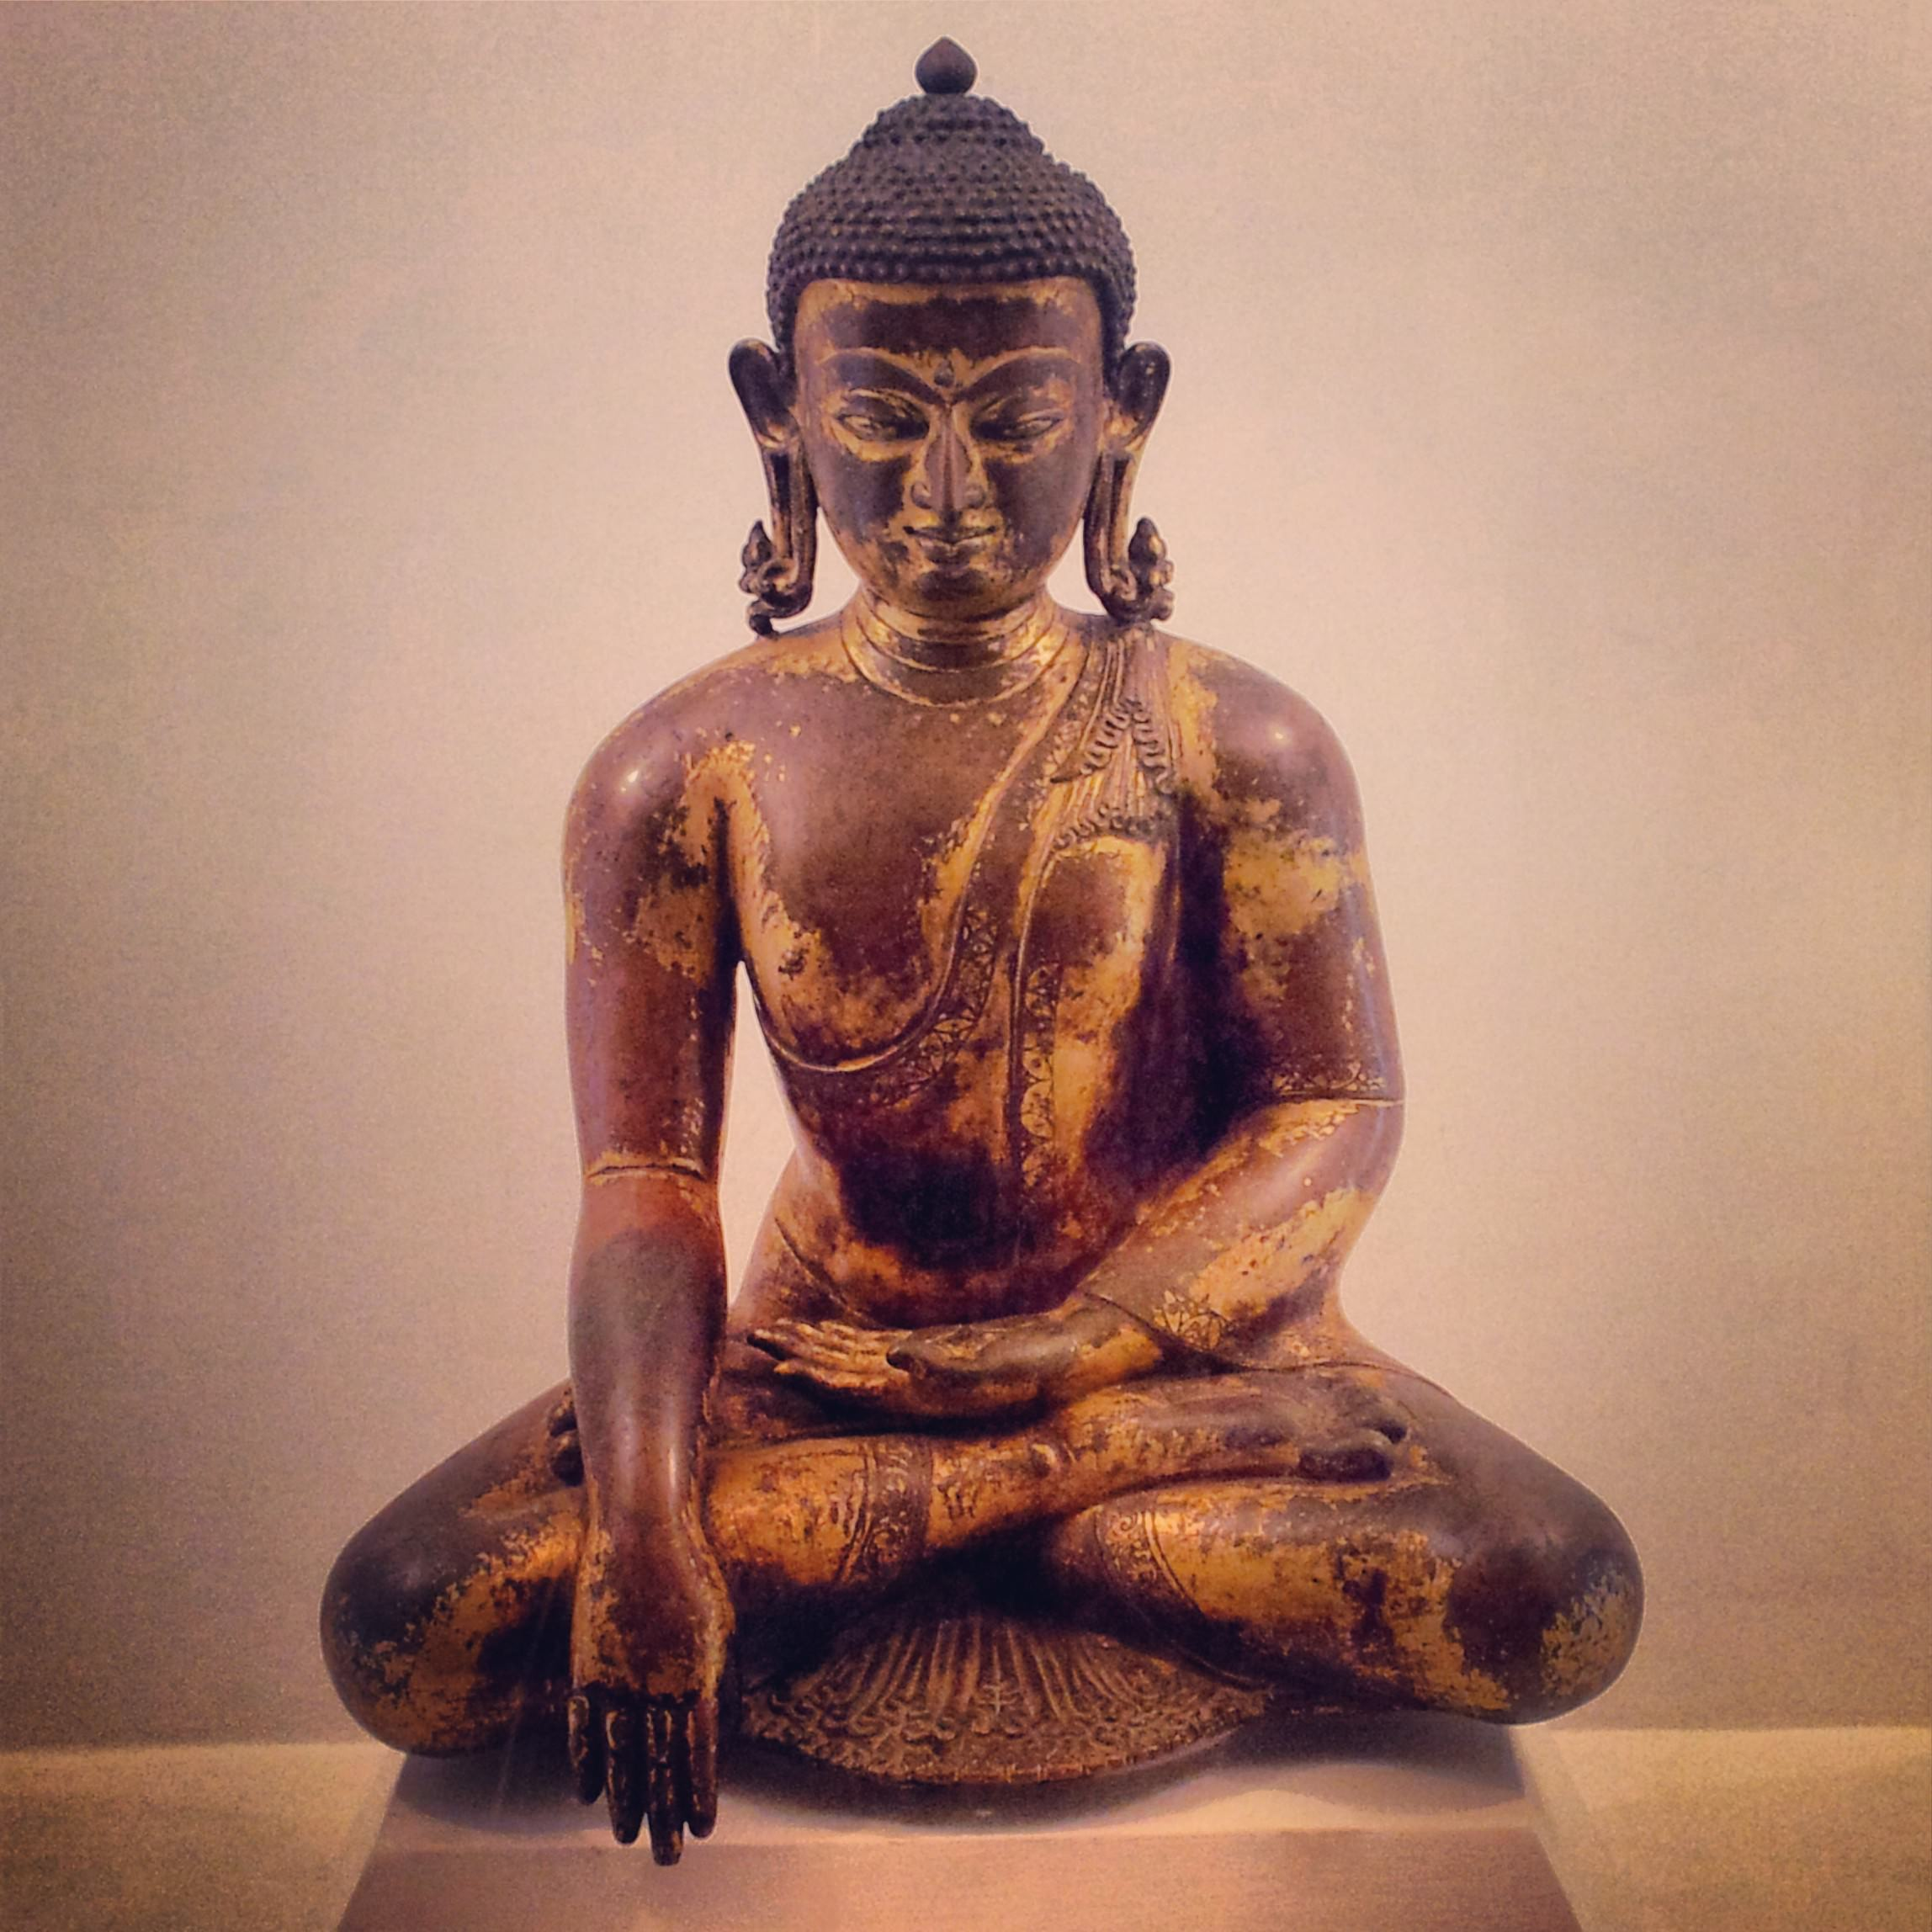 buddhism and siddhartha gautama This lesson will explore the founding of buddhism and the life of siddhartha gautama it will also highlight nirvana, asceticism, the concept of a.